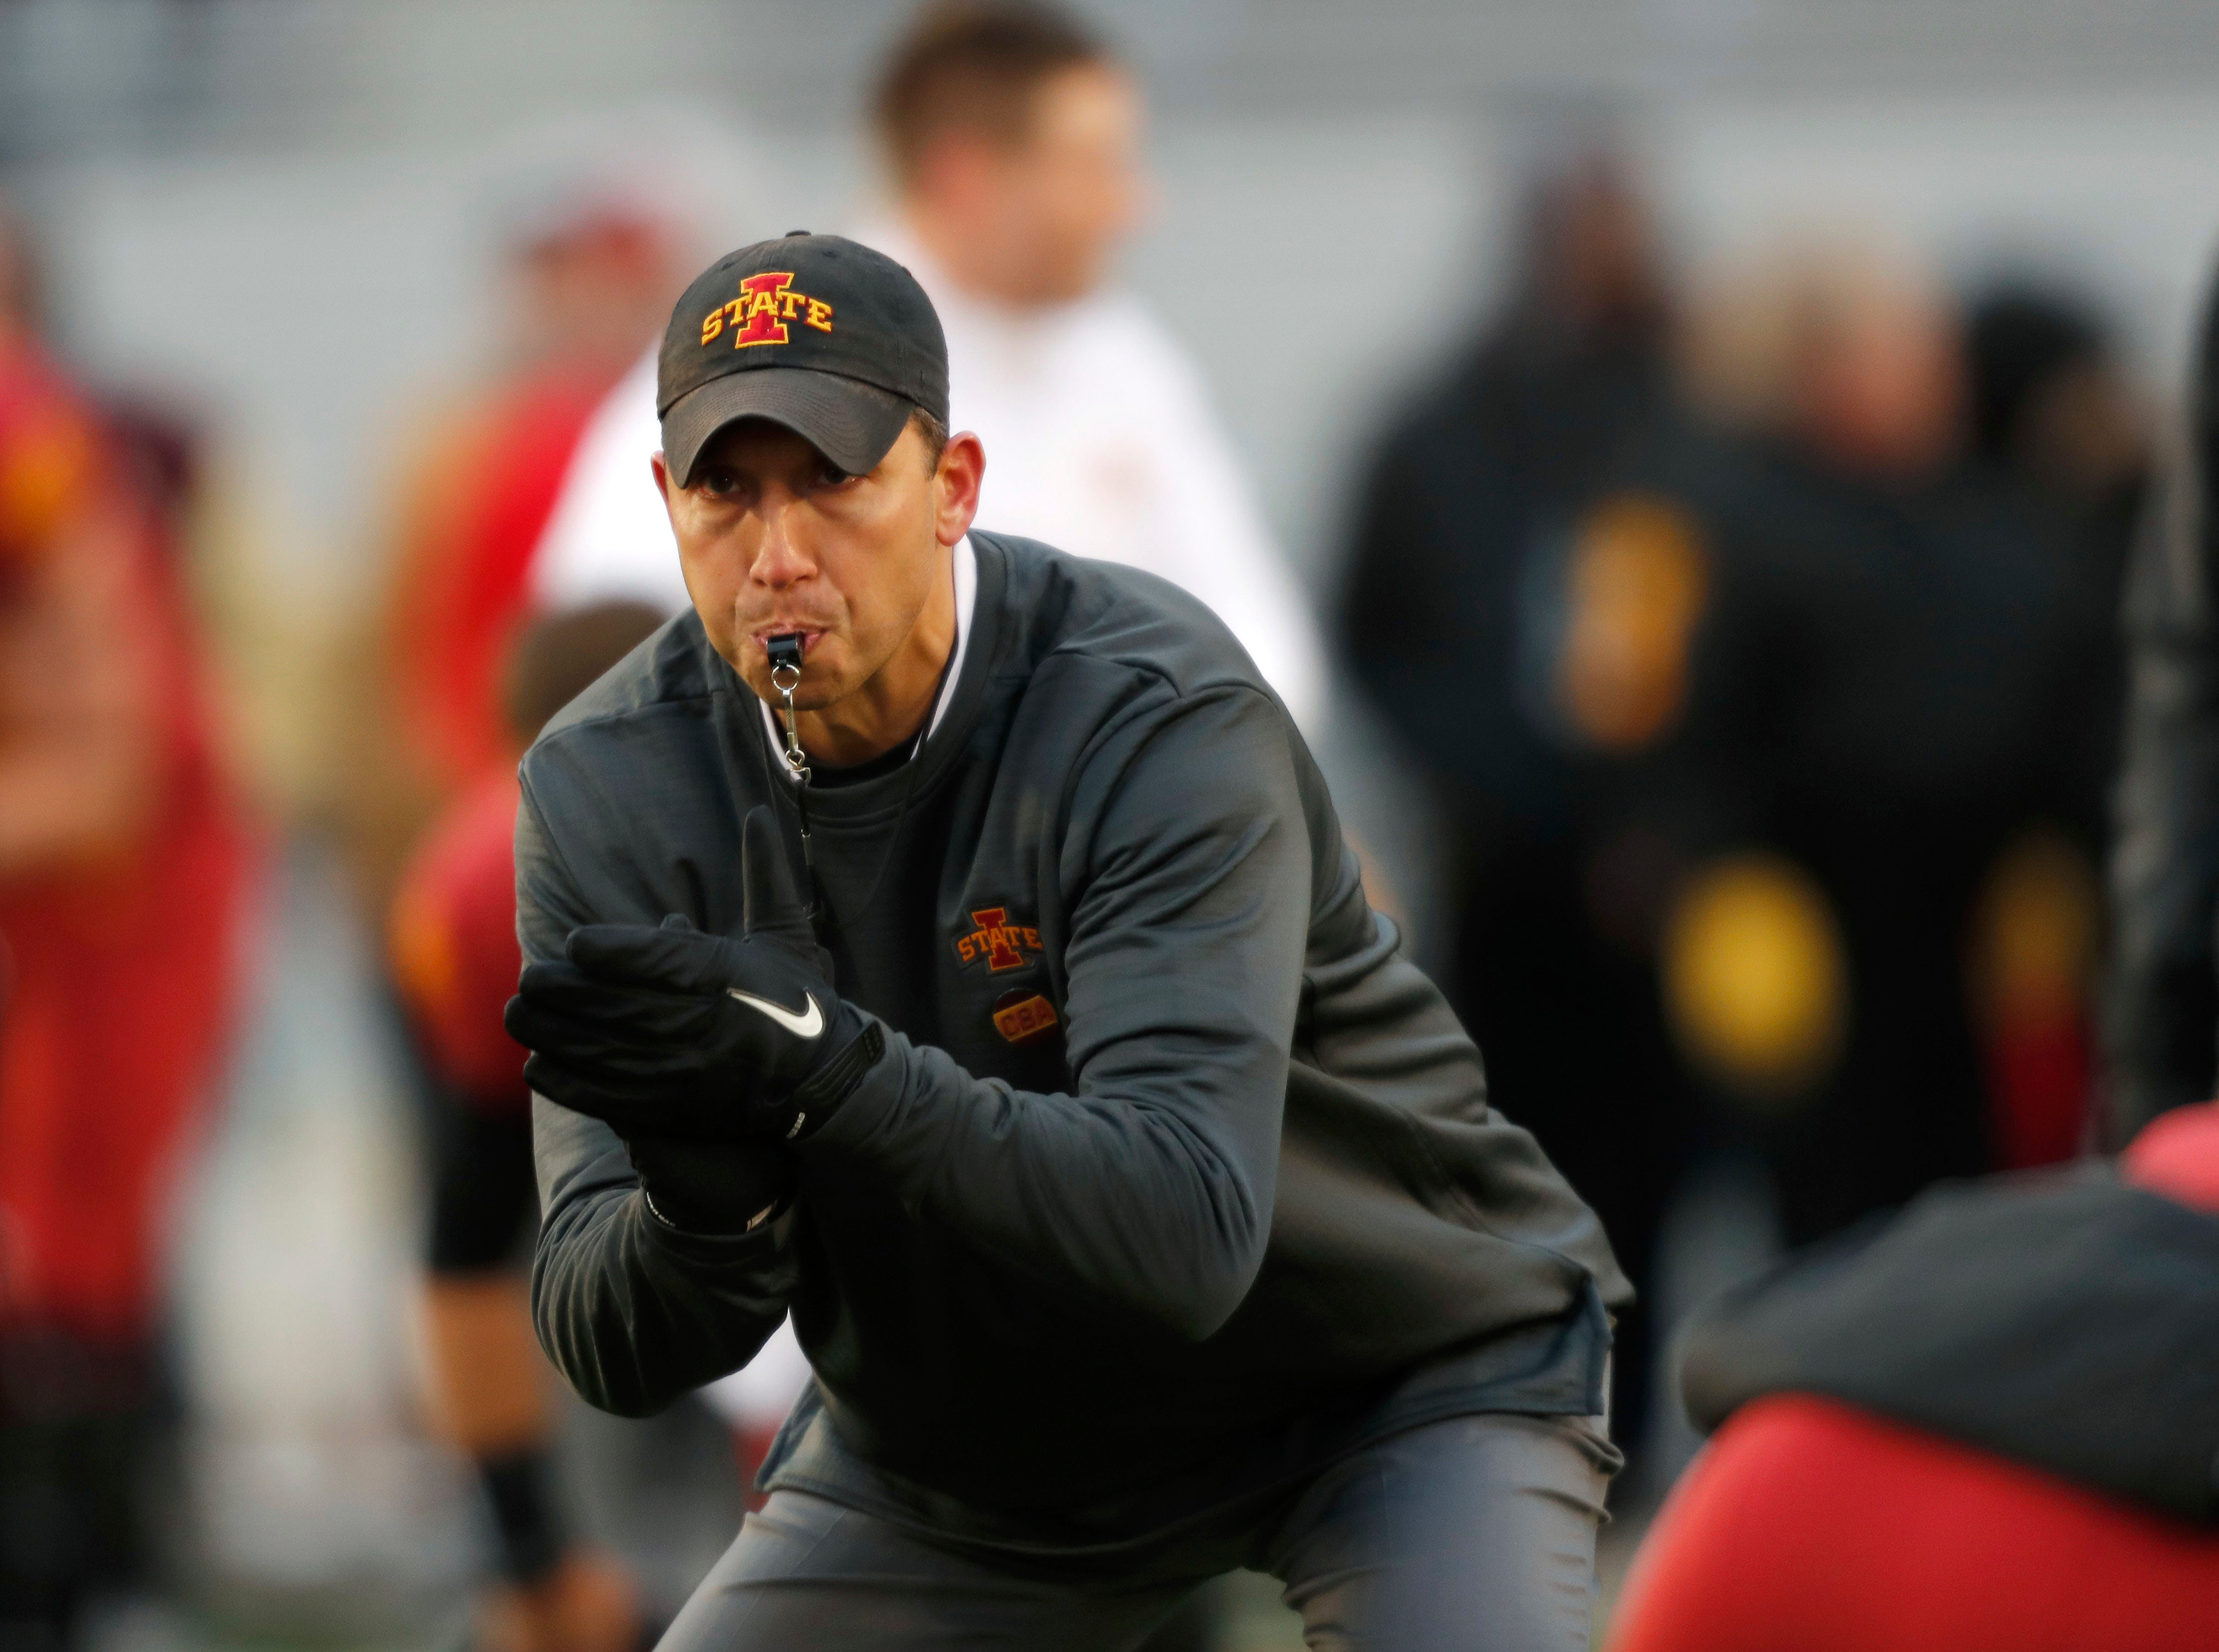 Iowa State head coach Matt Campbell directs his players during warmups before an NCAA college football game against Baylor, Saturday, Nov. 10, 2018, in Ames.